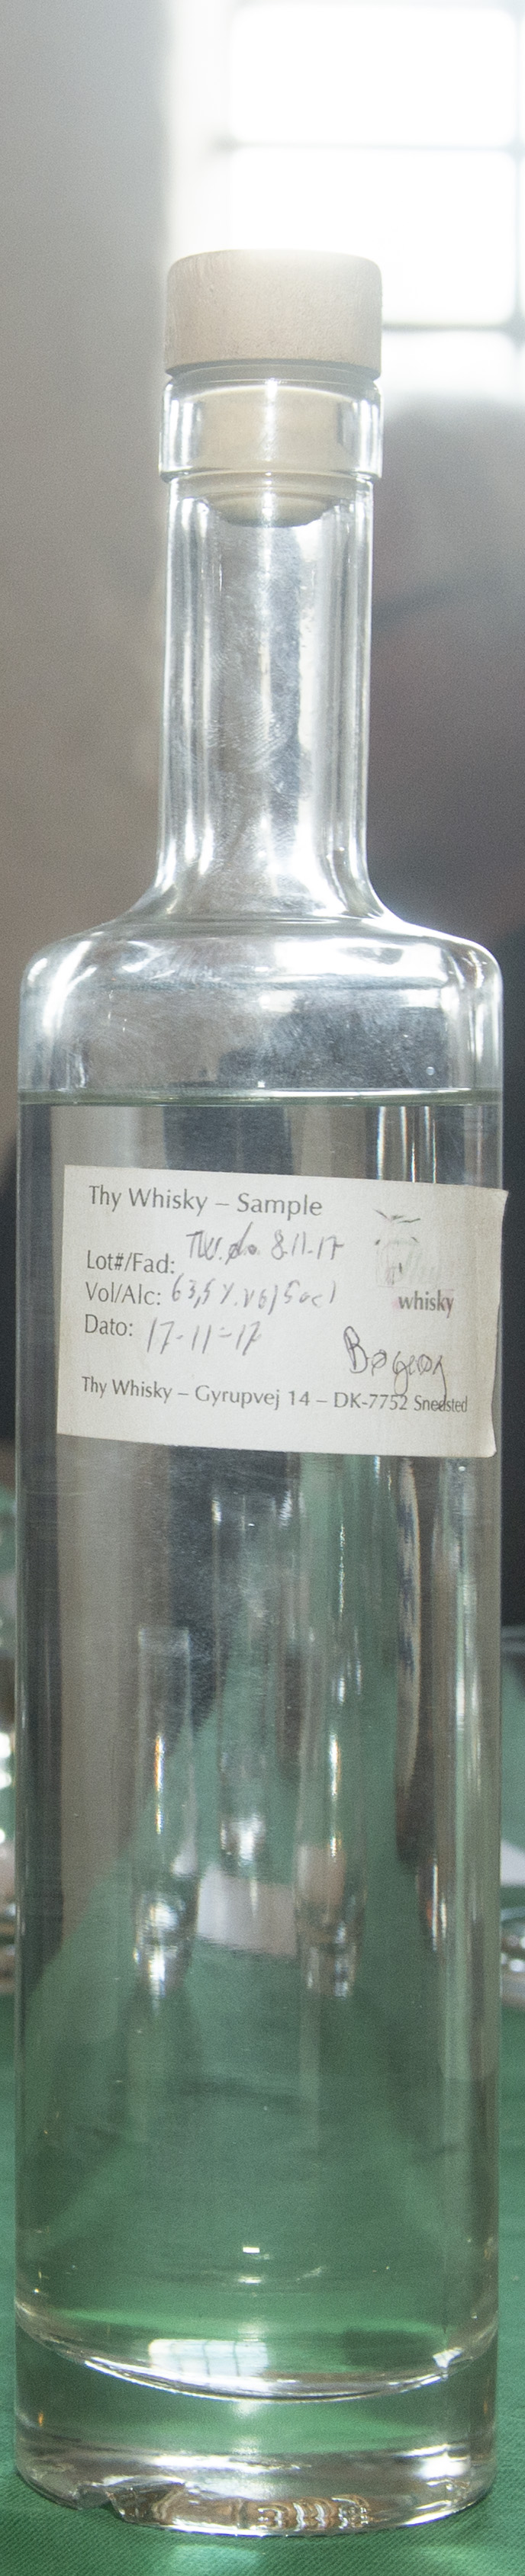 Billede: DSC_4002 - Thy Whisky new make boegeroeg.jpg